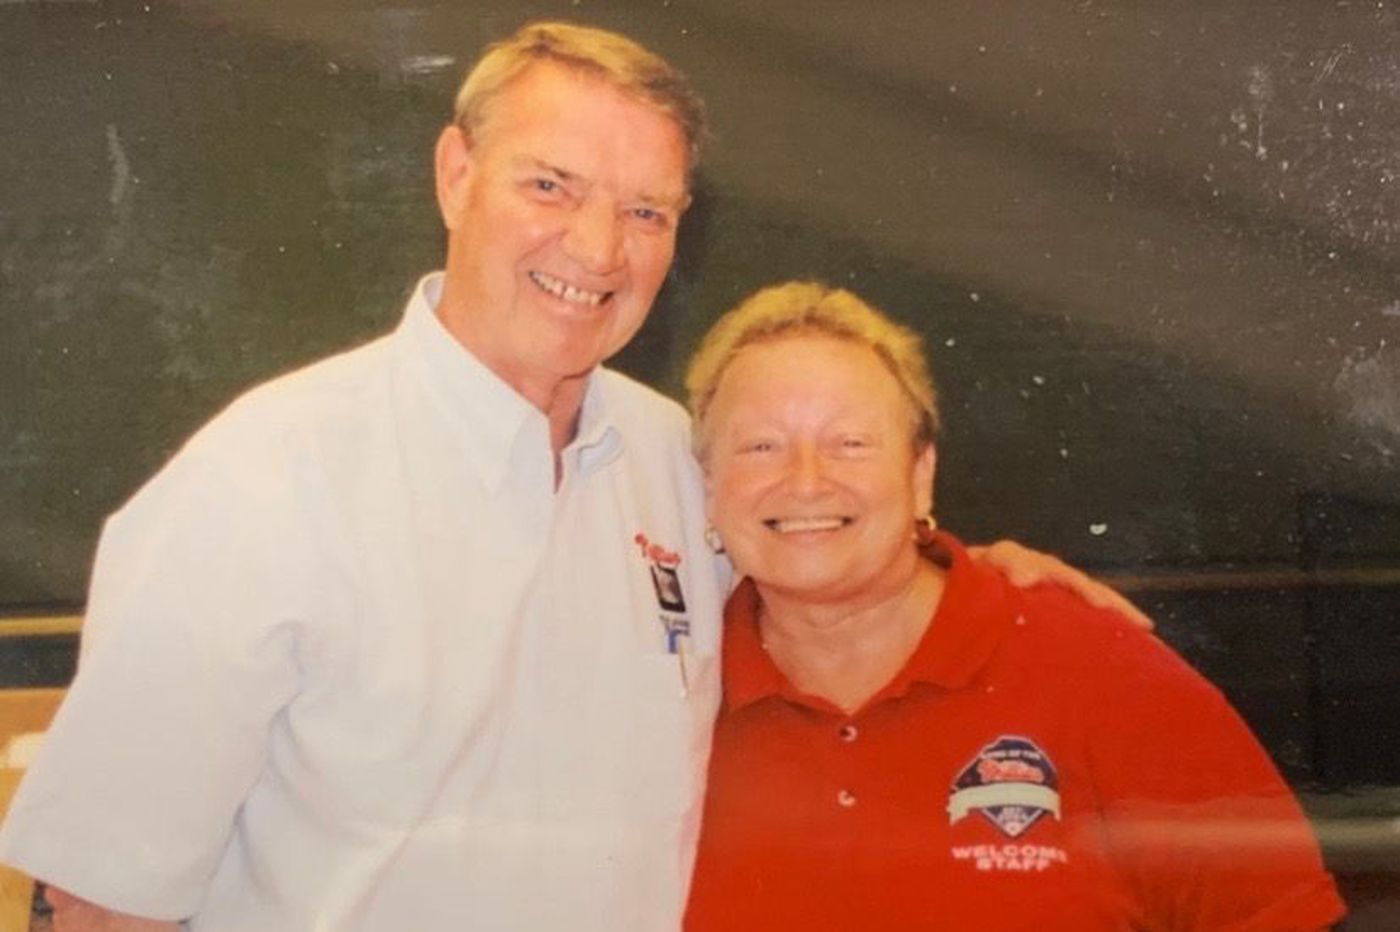 This 'reunion' between Harry Kalas and one of his biggest fans was years in the making